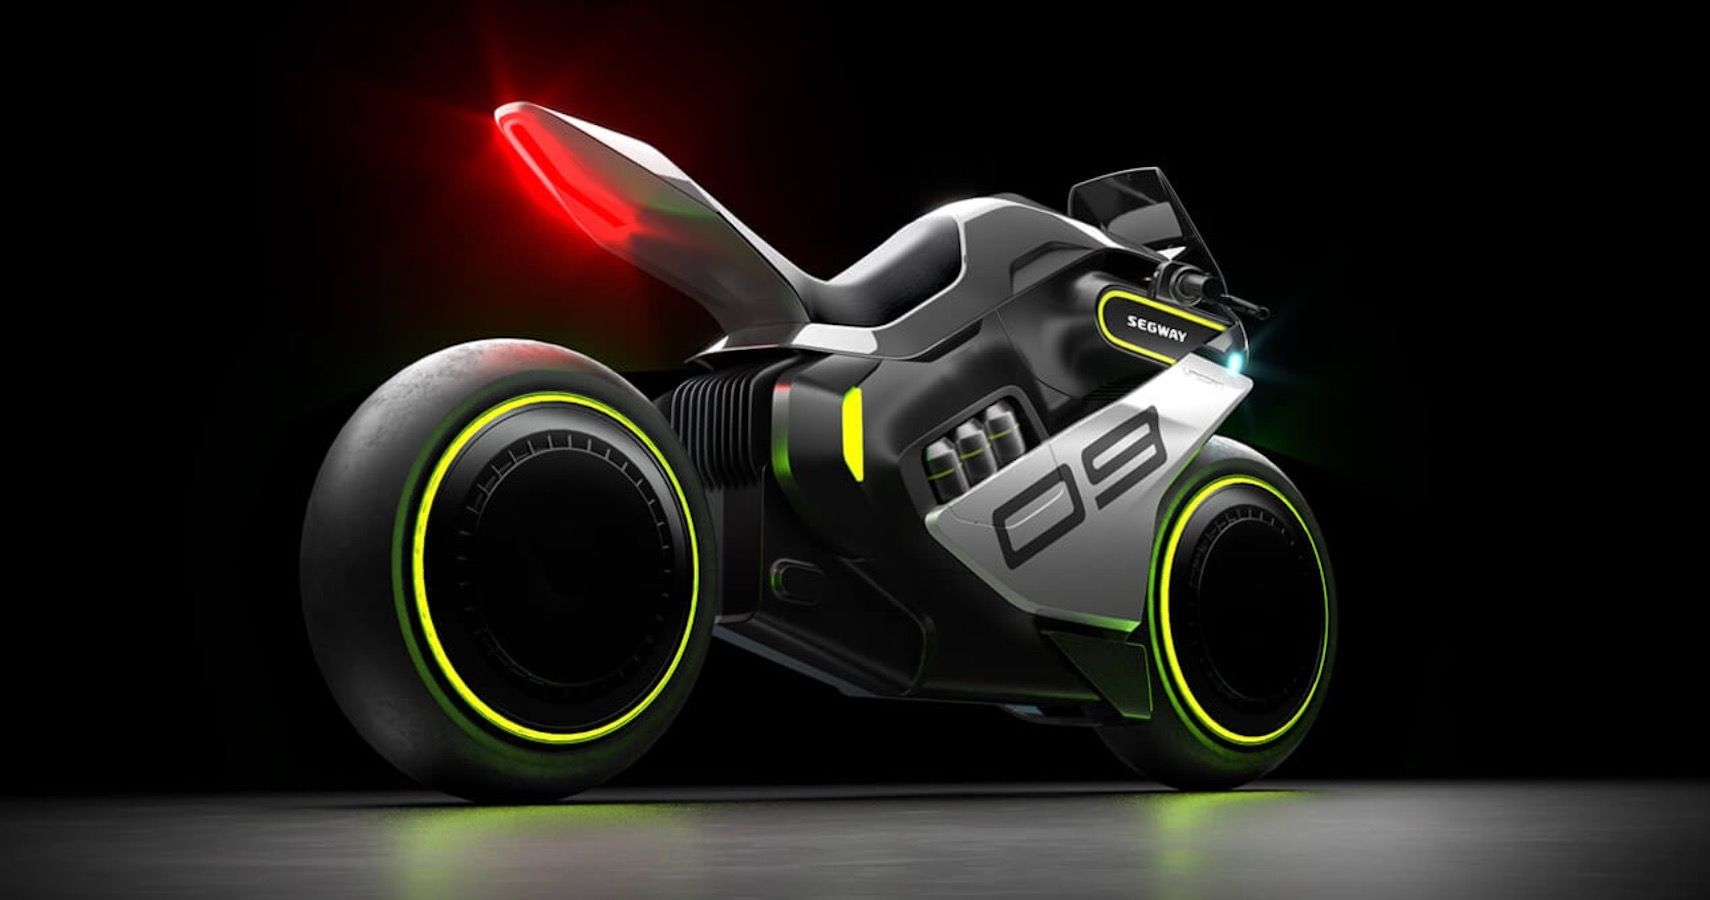 Segway Previews Cyberpunk-Esque Apex H2 Motorcycle Slated For 2023